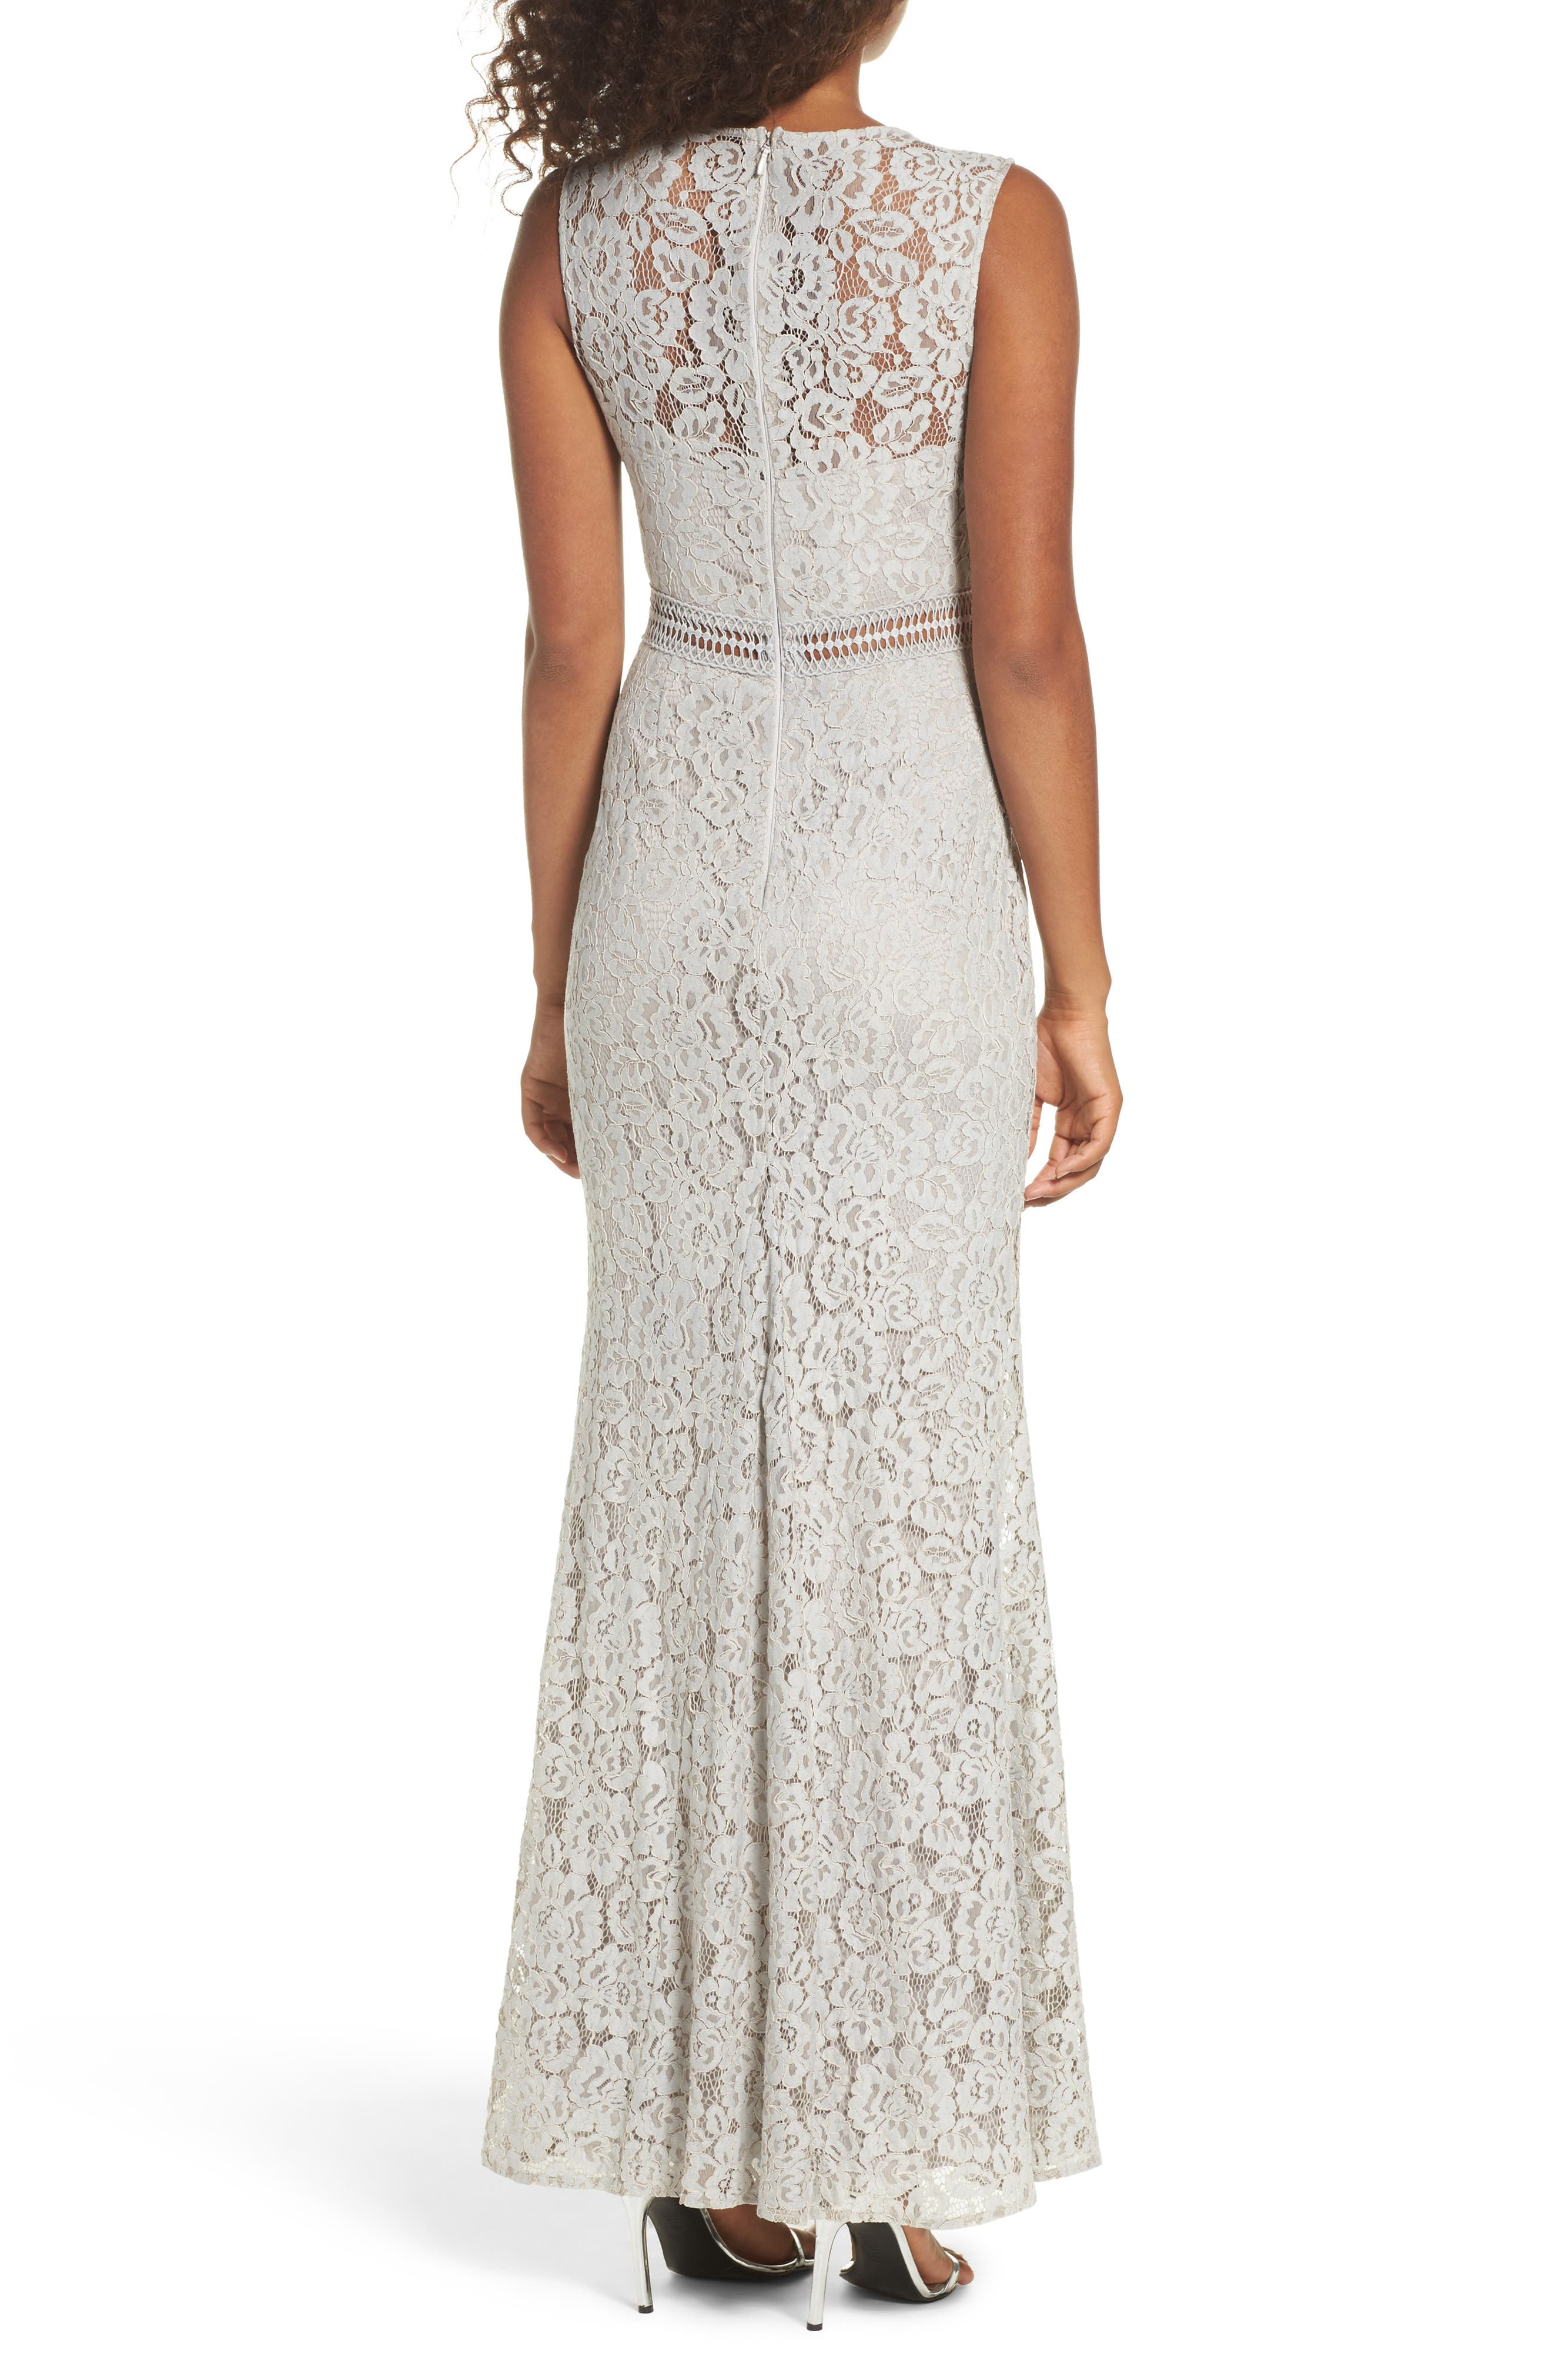 Music of the Heart Lace Maxi Dress,                             Alternate thumbnail 2, color,                             020